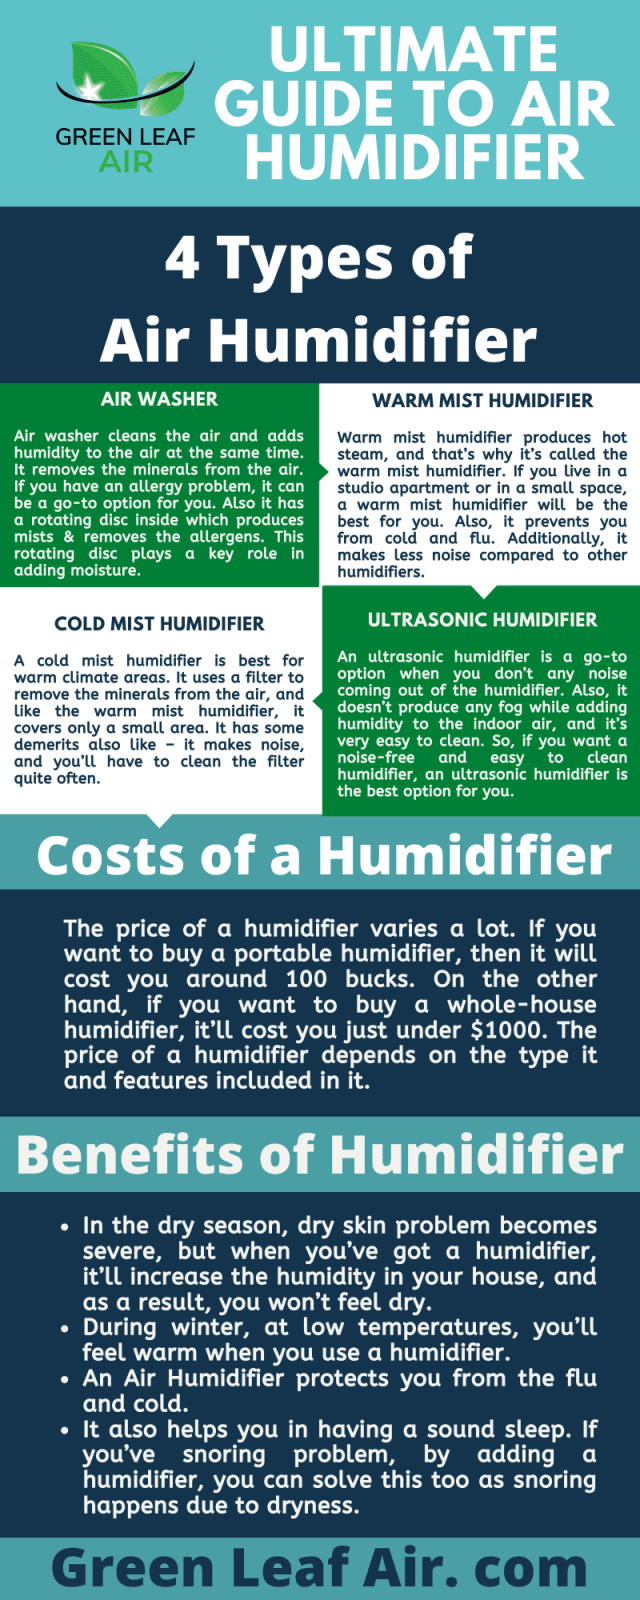 Ultimate Guide to Air Humidifier